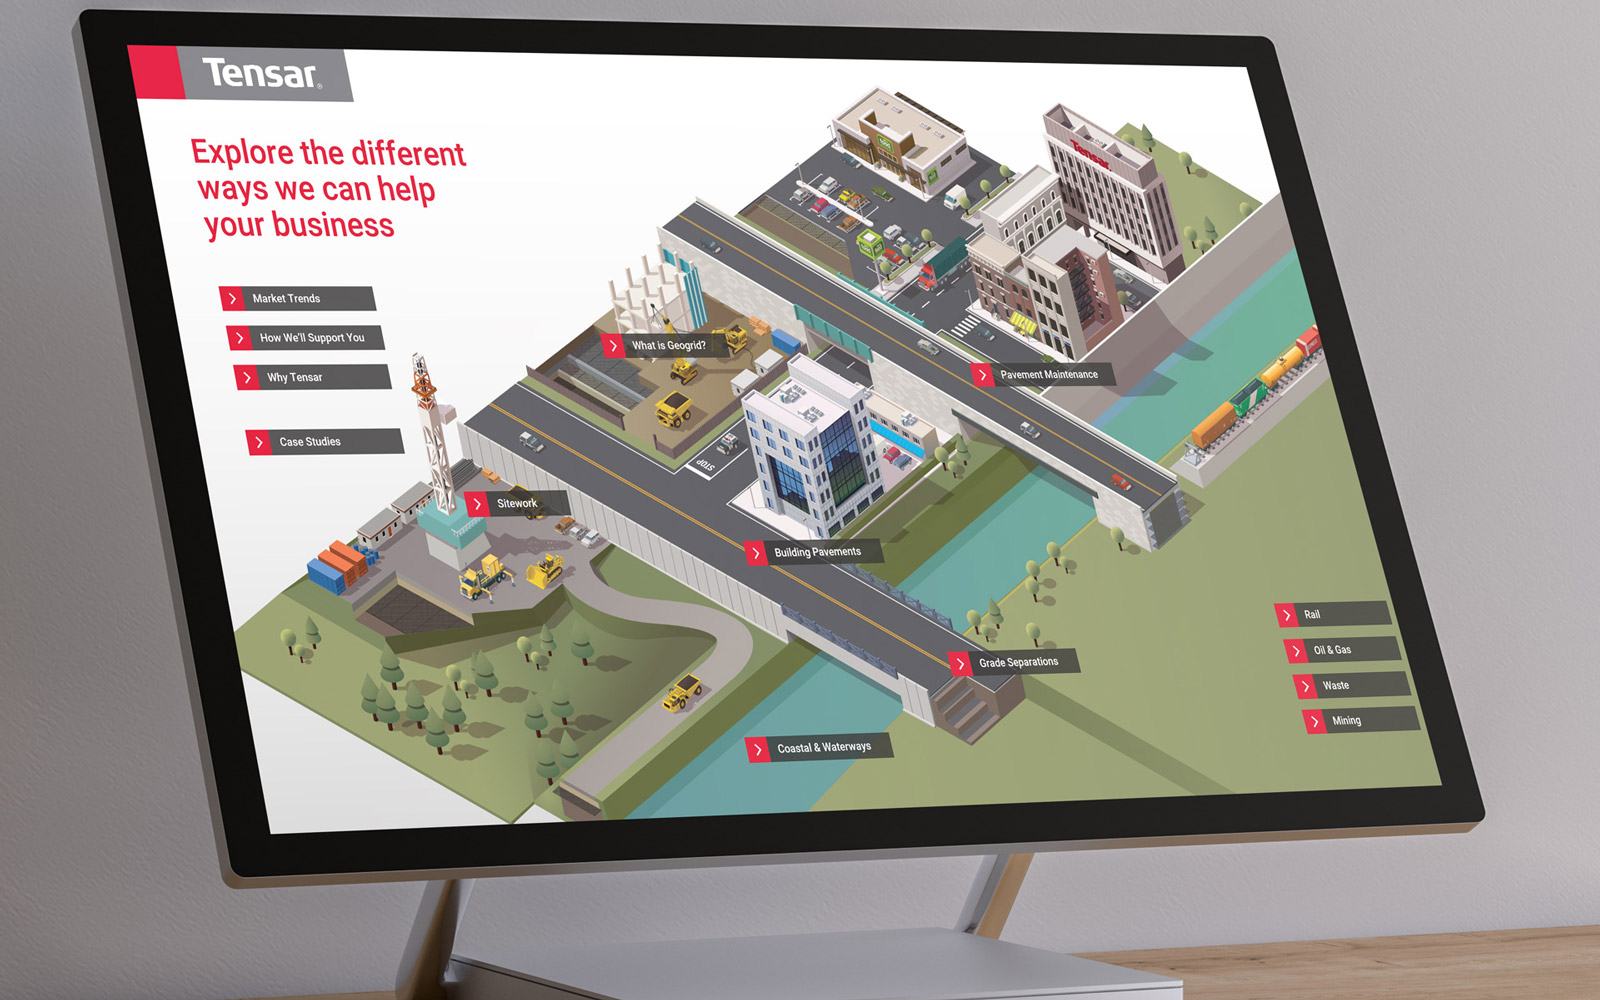 Large monitor displaying Tebsar interactive touchscreen presentation showing illustration of map